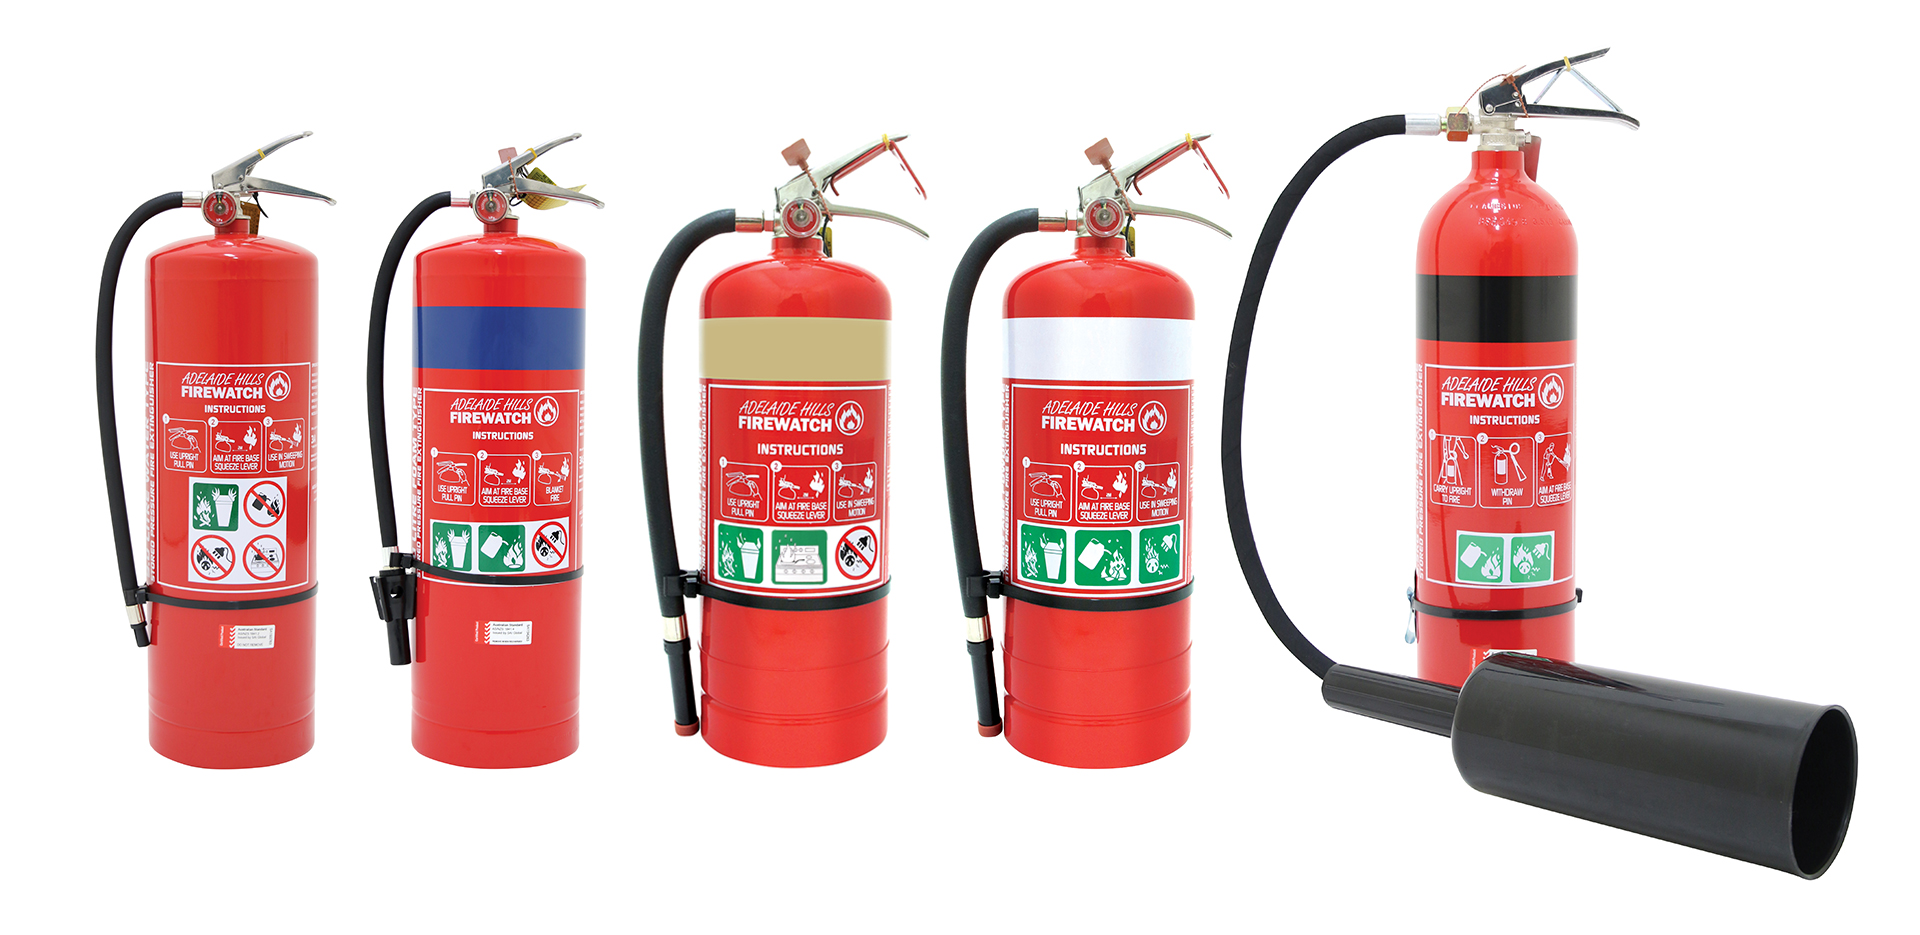 Portable Fire Suppression Equipment : Fire protection products extinguishers safety